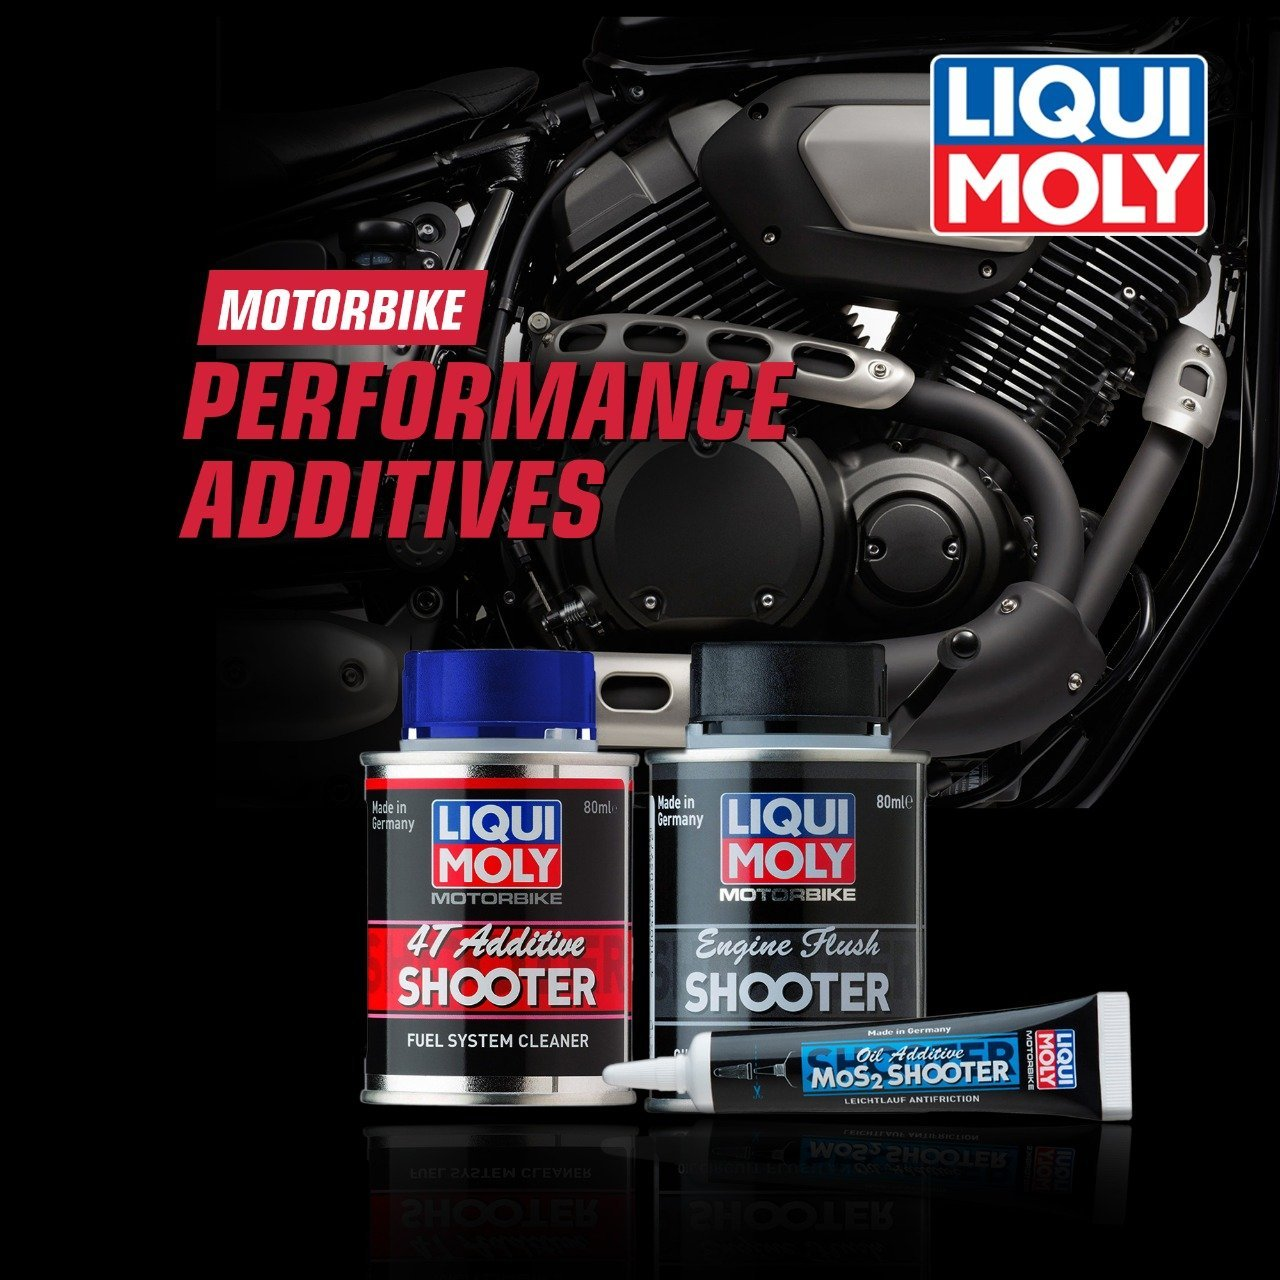 Liqui Moly Motorbike Performance pack